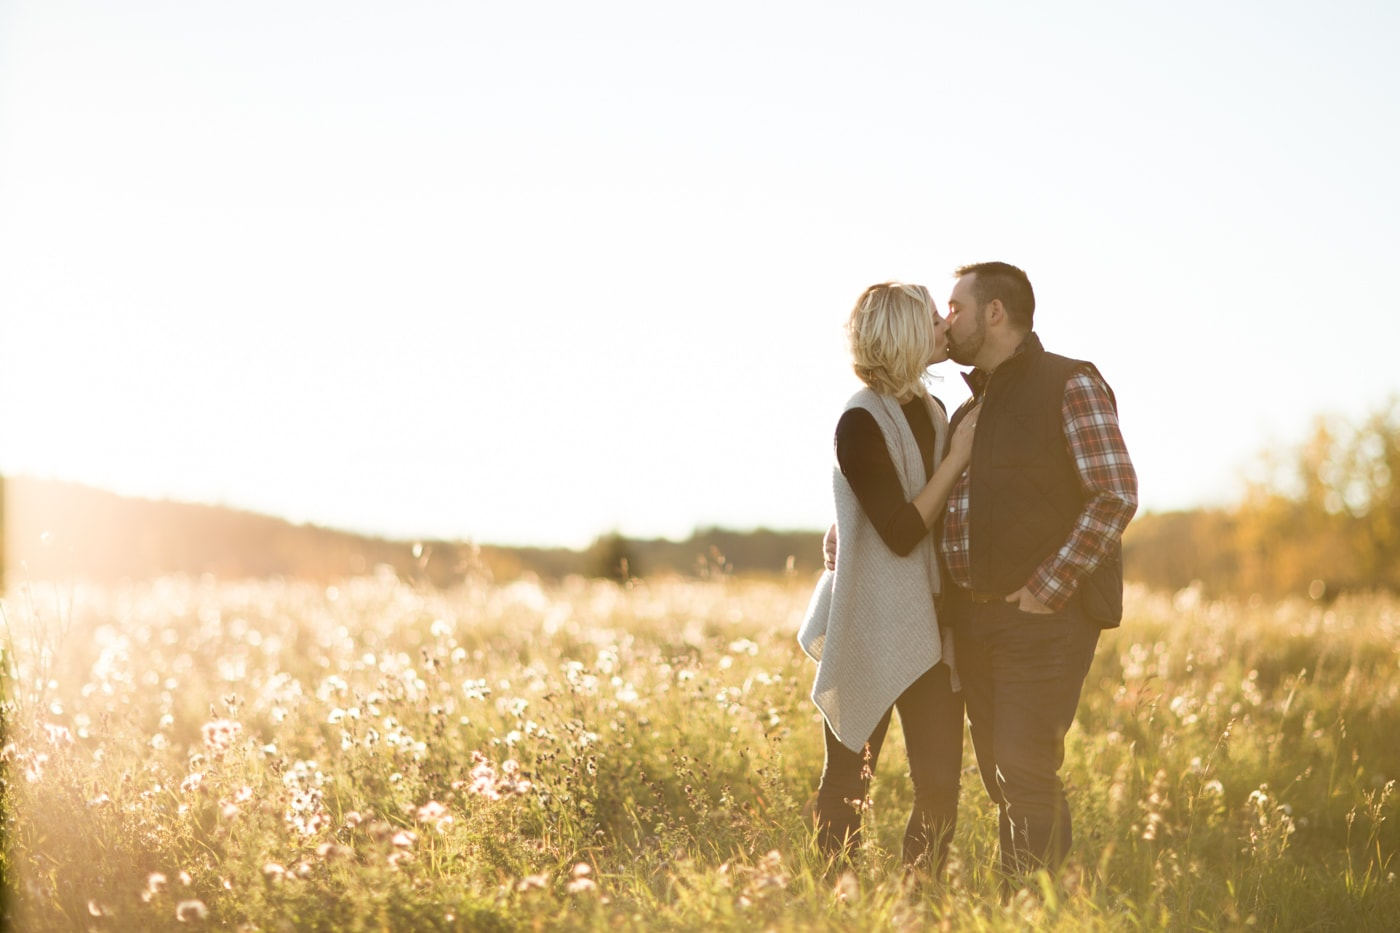 Fall engagement session in Calgary, Alberta with beautiful backlighting and a newly engaged couple kissing as the sun sets